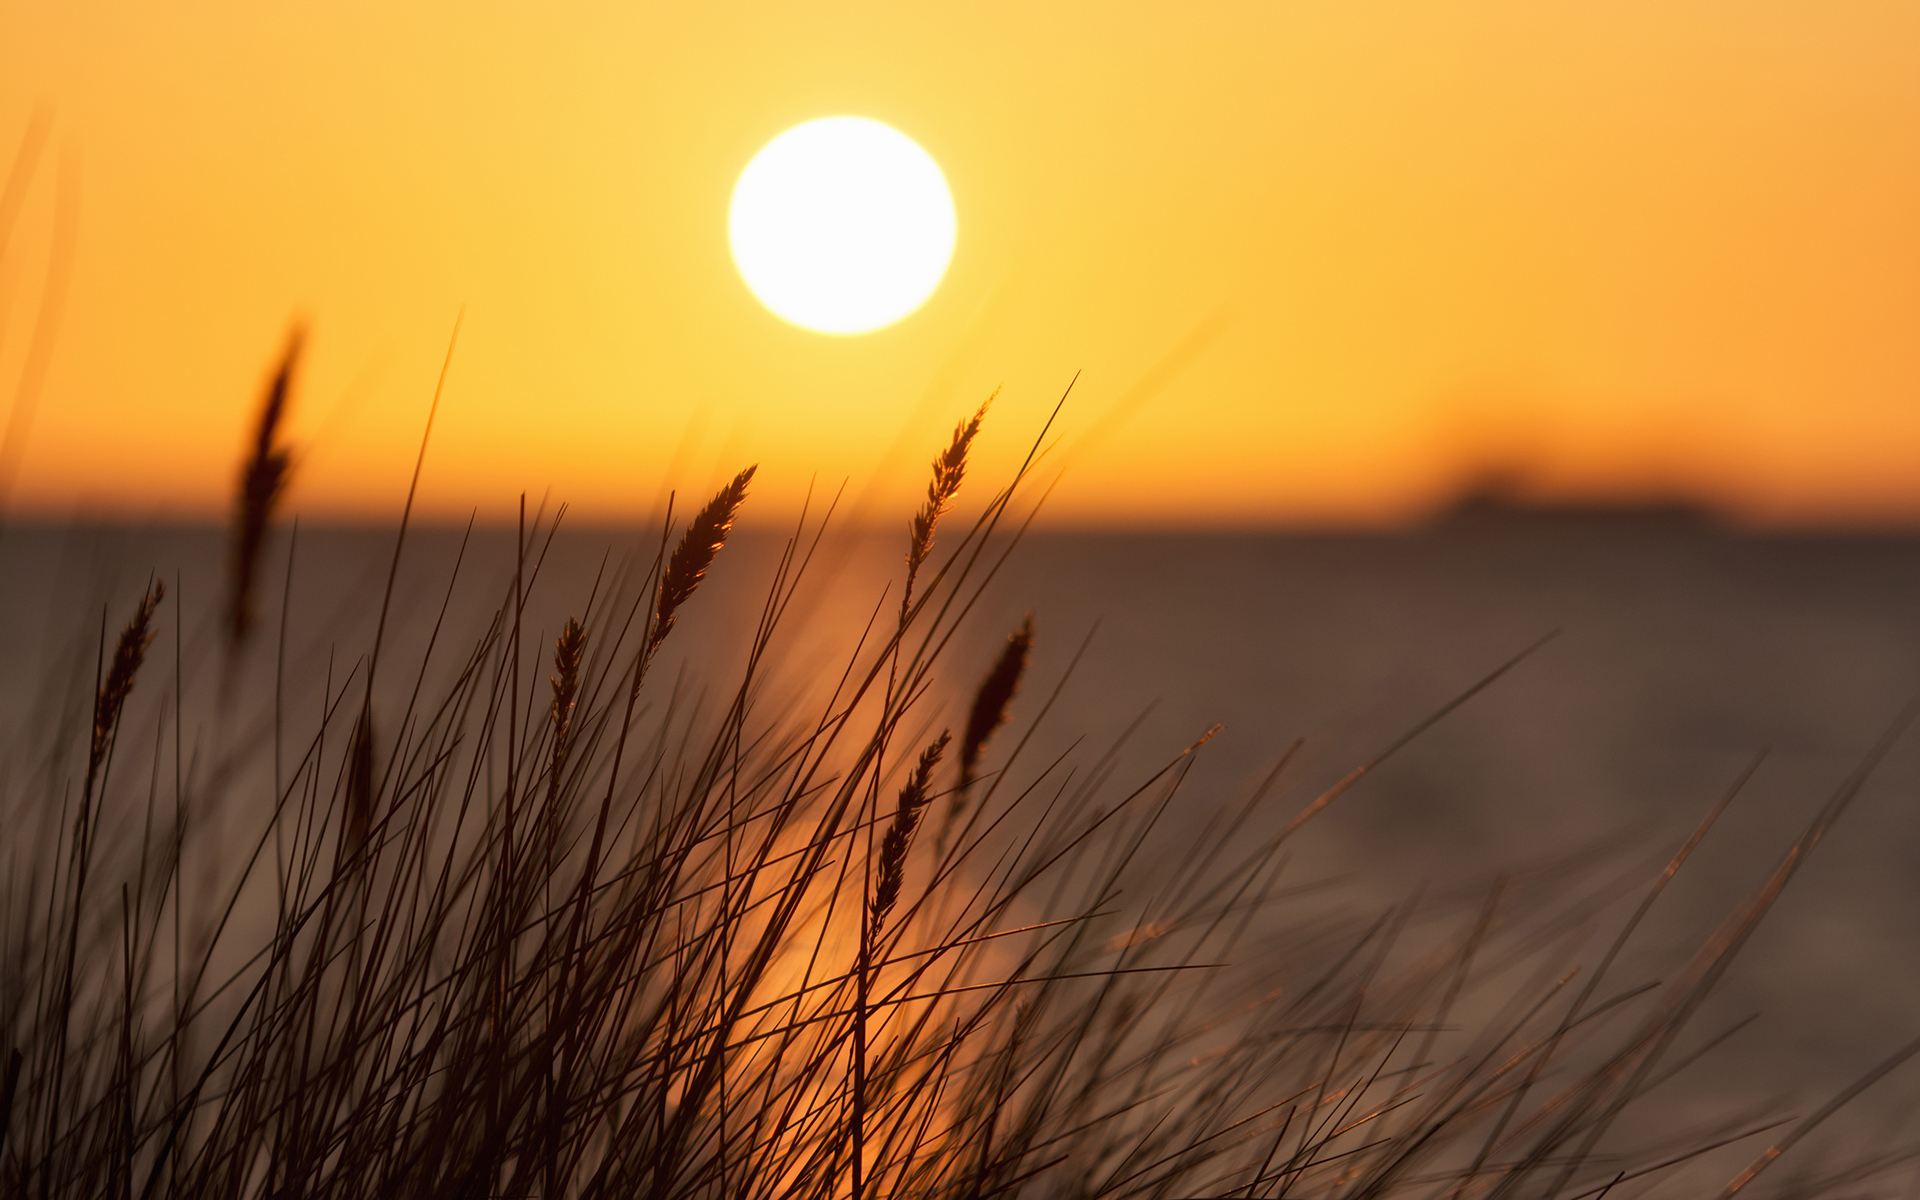 Sunset grass seascape wallpaper | 1920x1200 | #32144